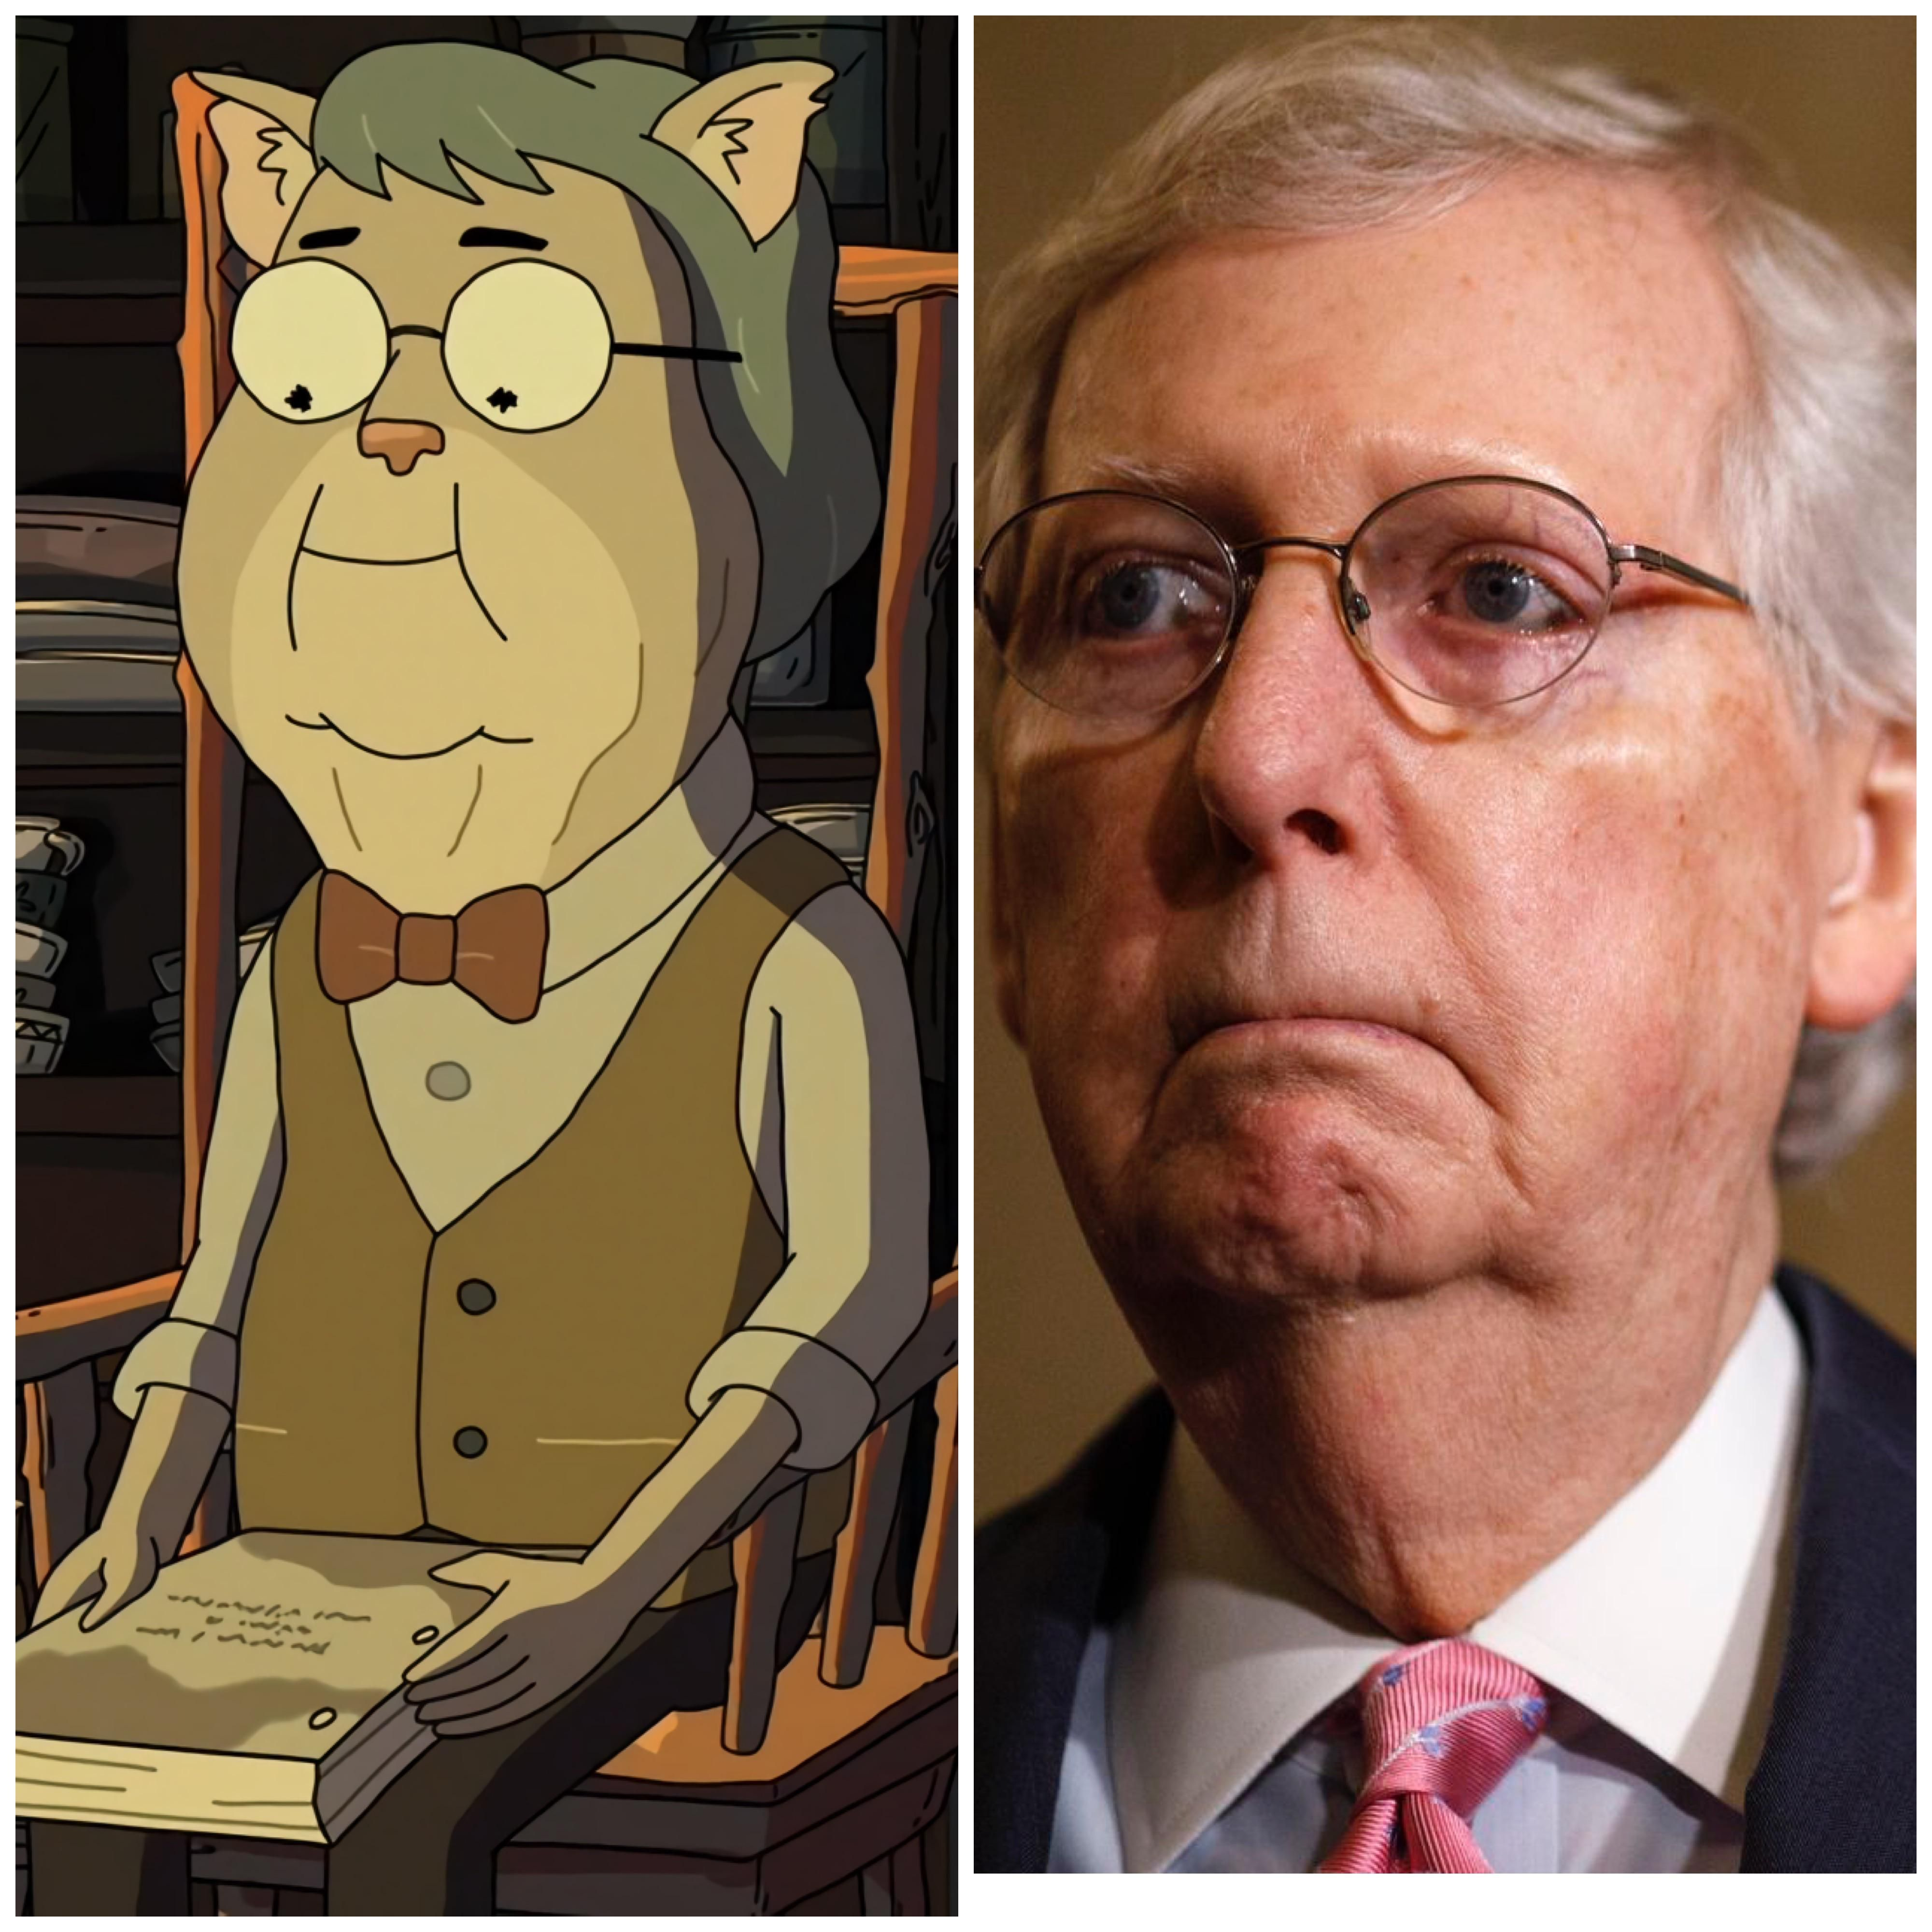 """Is it just me or does Mitch McConnell look like the Lighthouse Keeper from """"Look Who's Purging Now"""""""